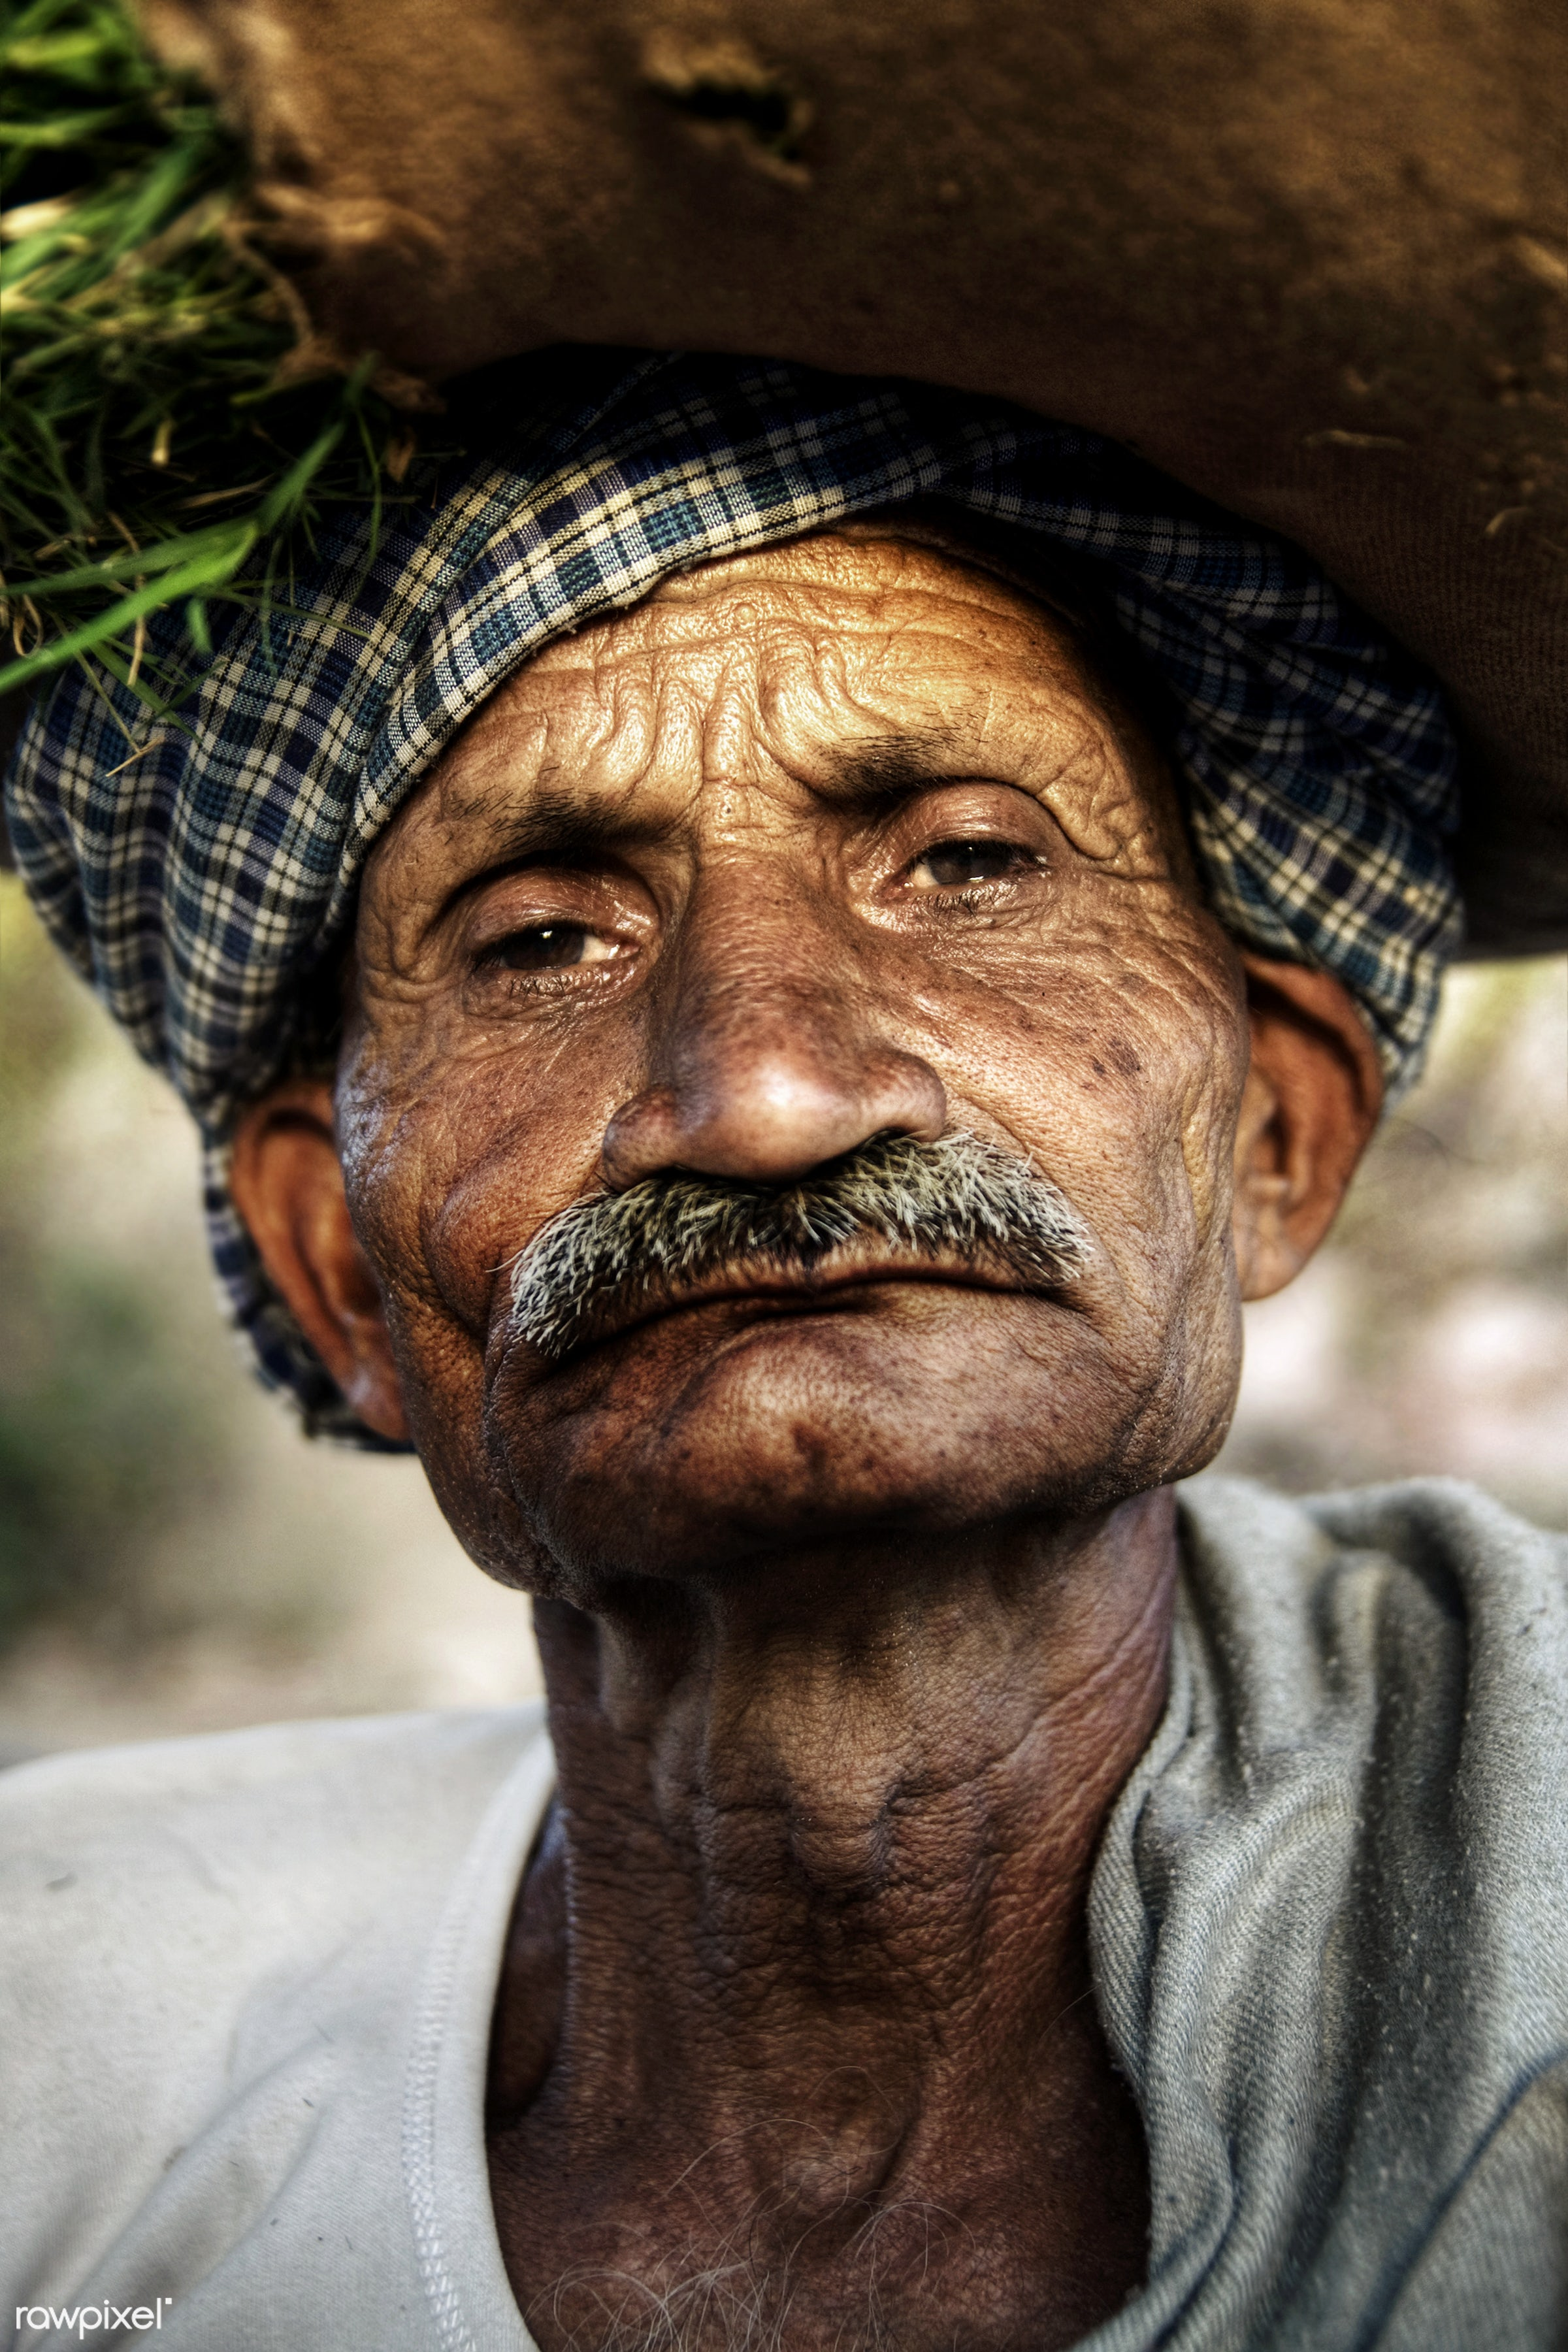 Portrait of a serious Indian man - carrying on the head, close-up, concepts and ideas, despair, farmer, grumpy, hinduism,...